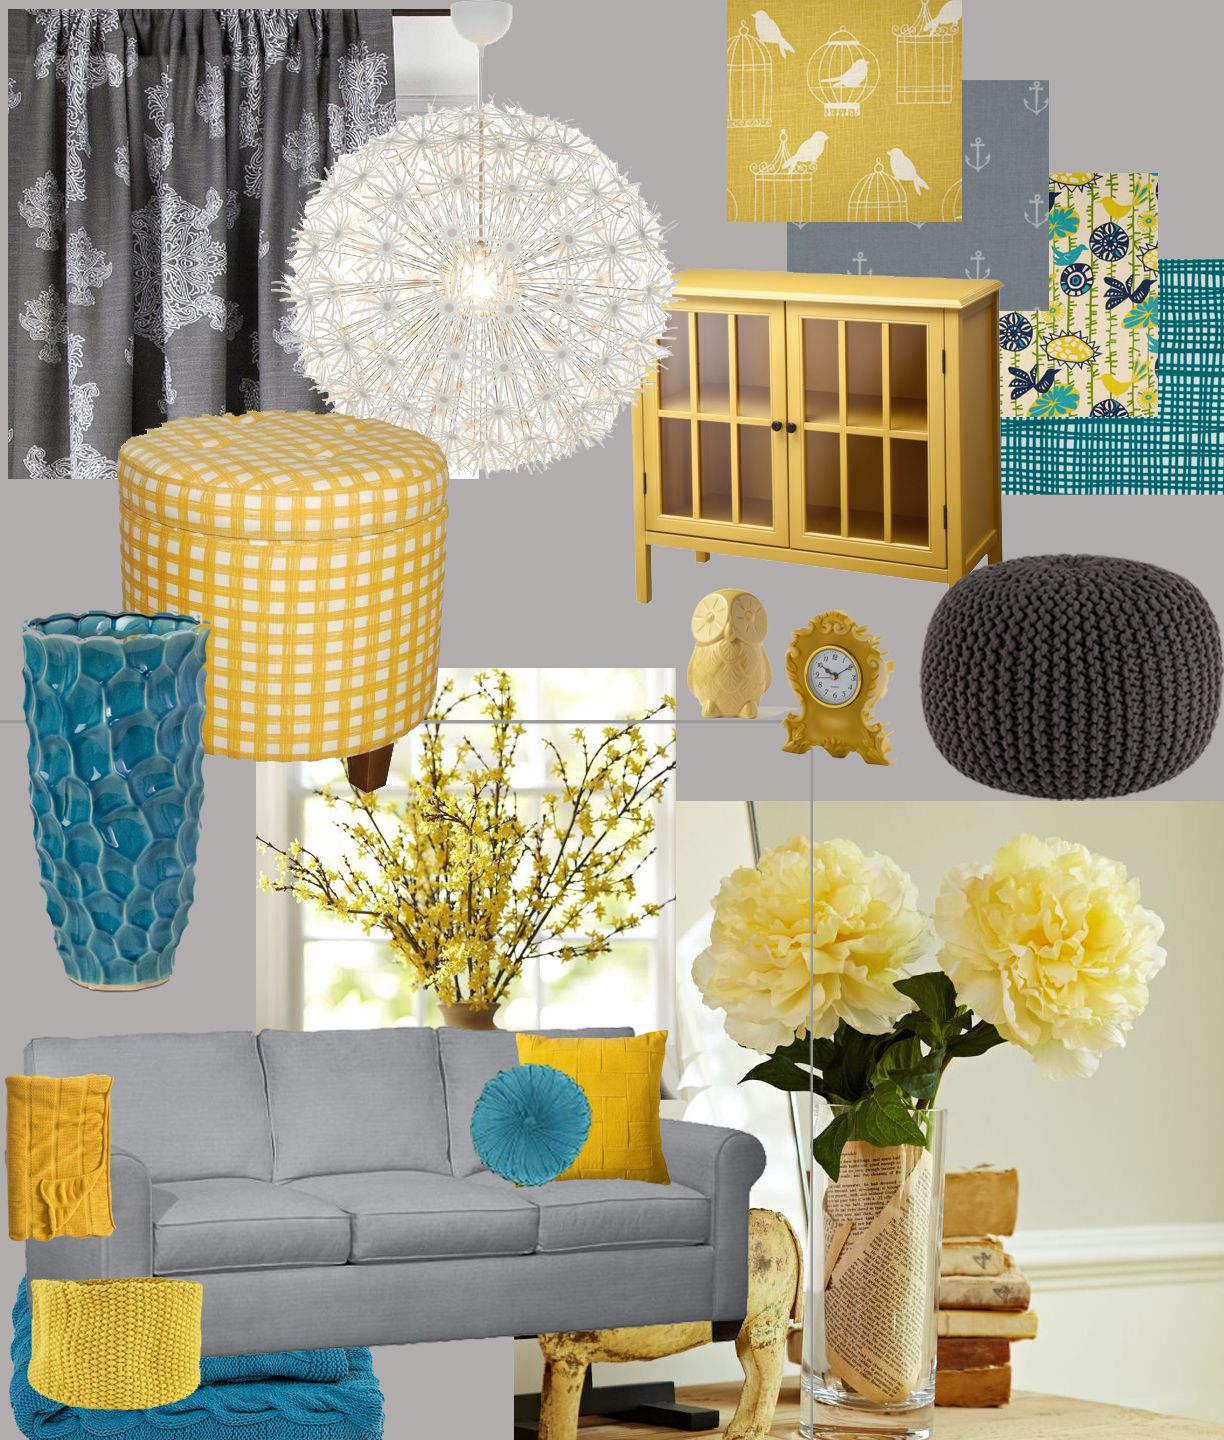 My Living Room Design Board: yellow, teal and grey. | LIVING ...